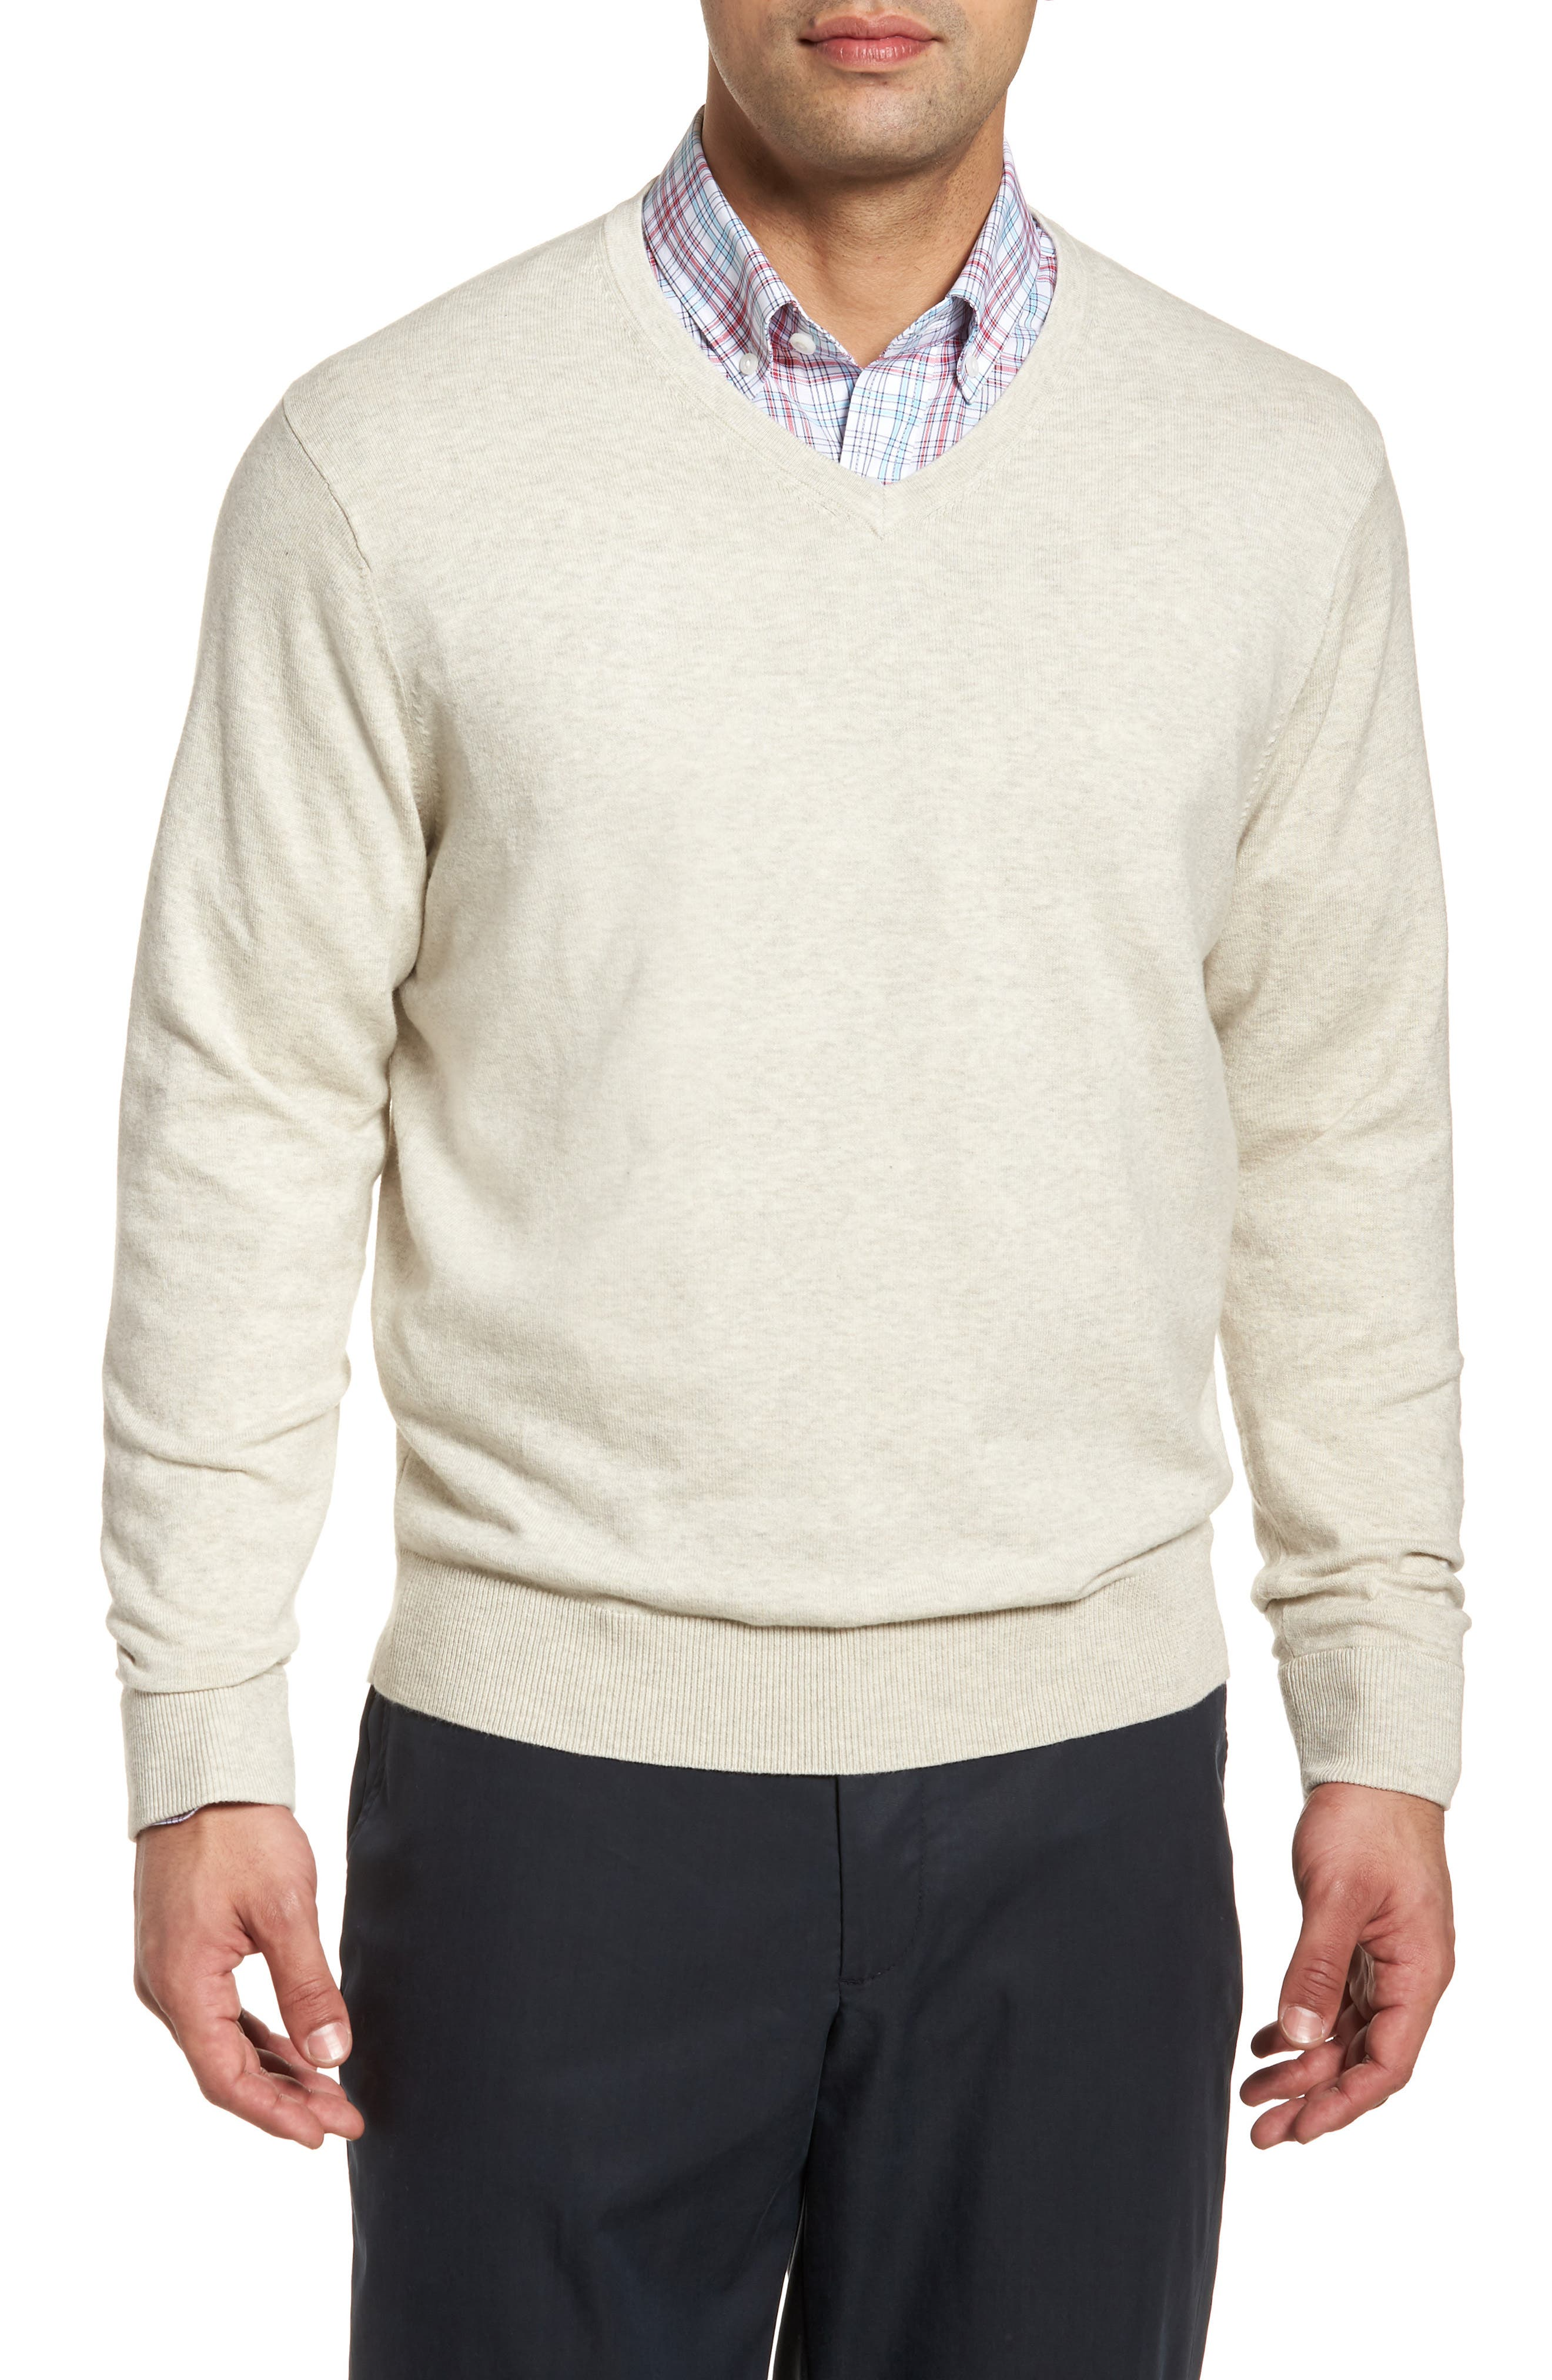 CUTTER & BUCK, Lakemont Classic Fit V-Neck Sweater, Main thumbnail 1, color, OATMEAL HEATHER